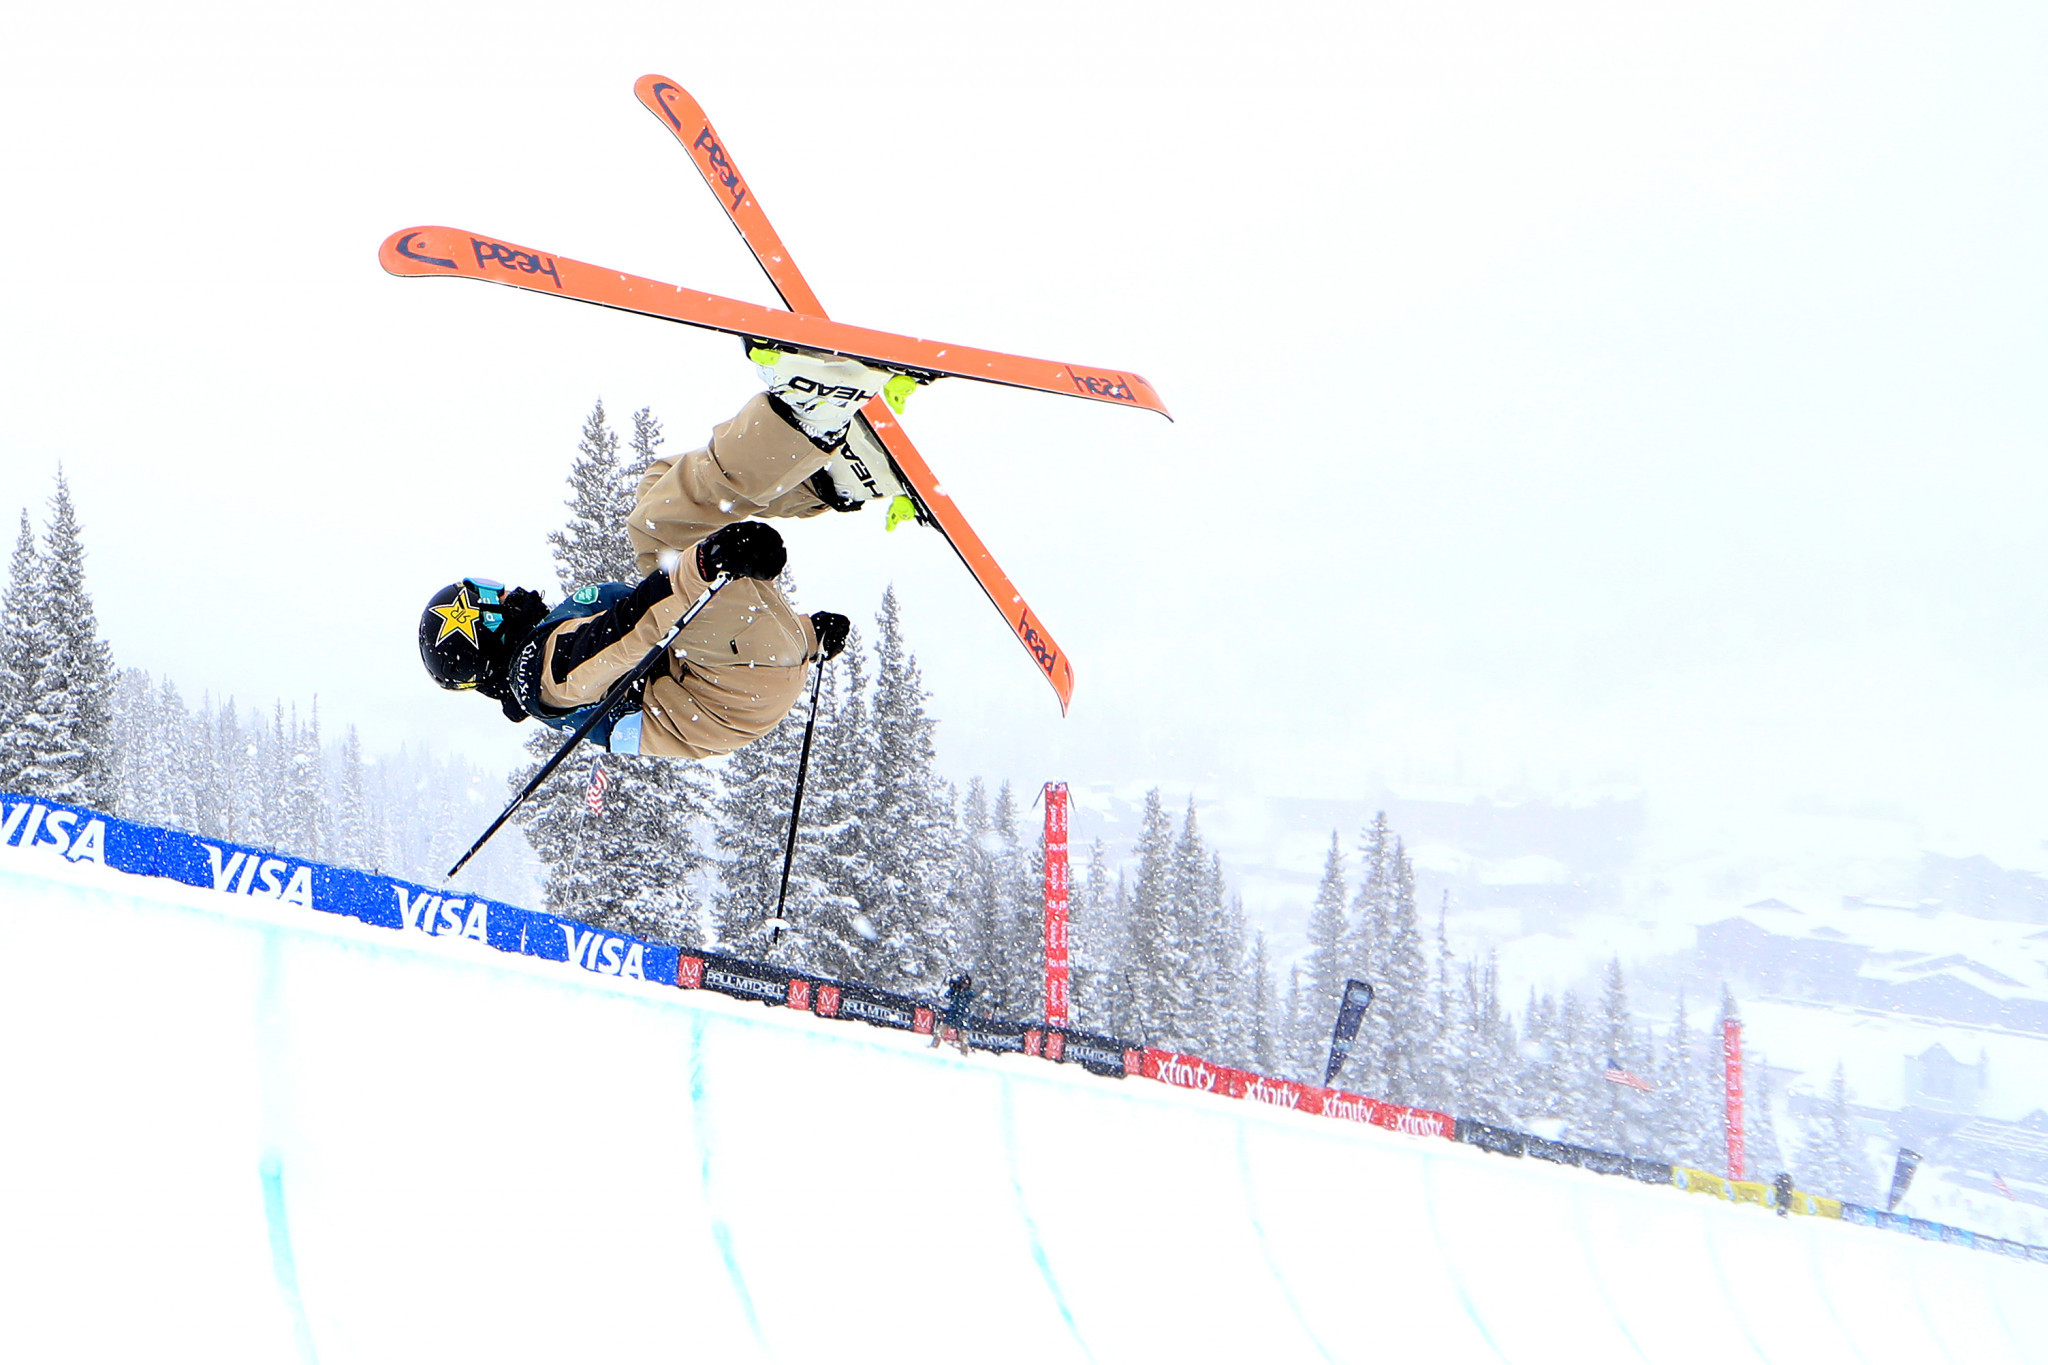 World champion Blunck tops men's qualification at Ski Halfpipe World Cup in China